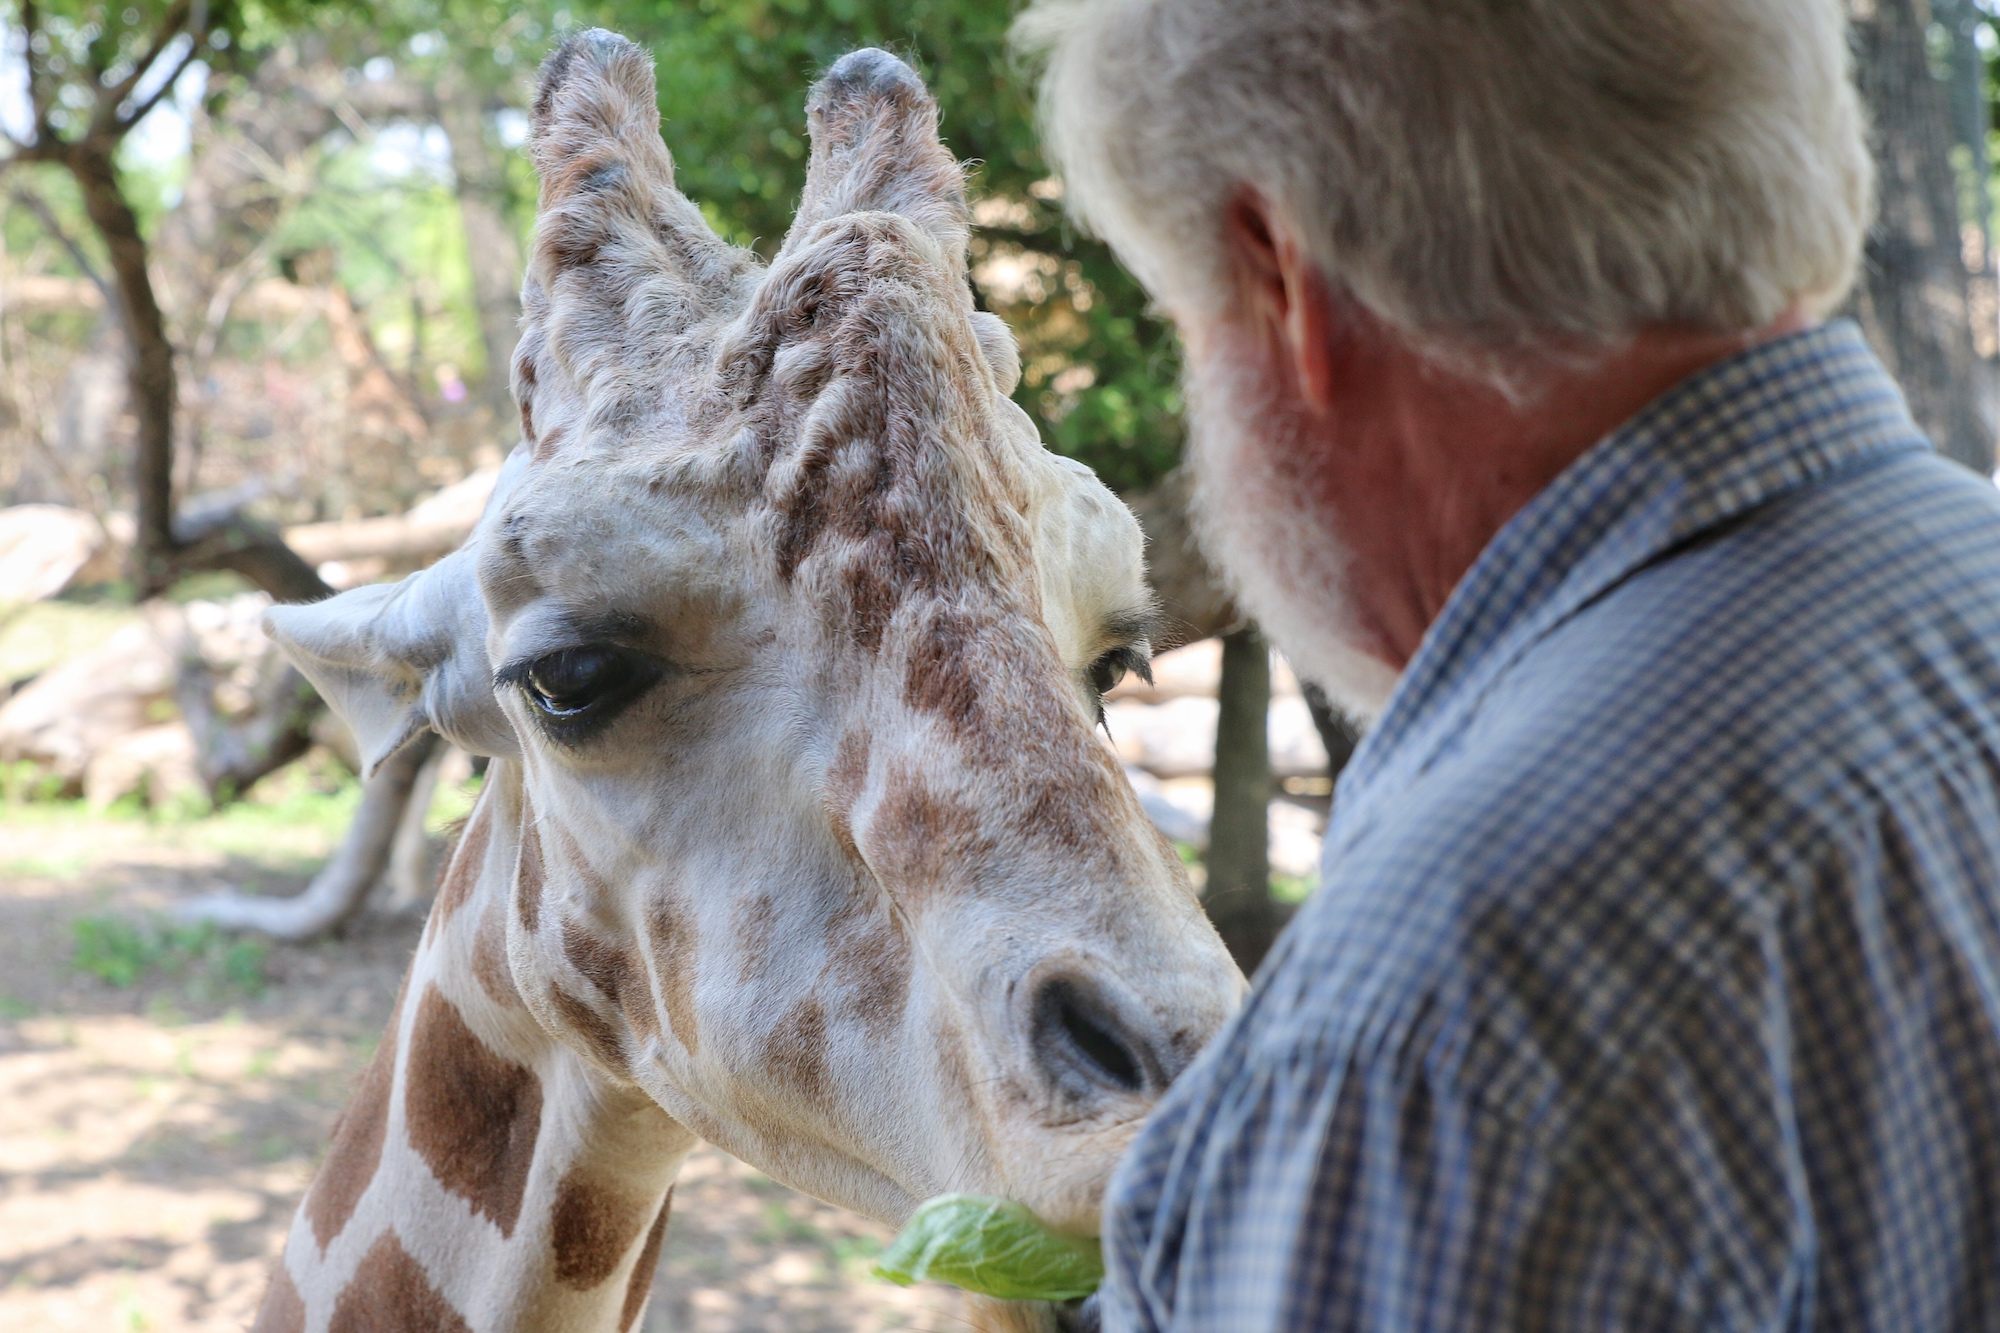 feed giraffe by hand